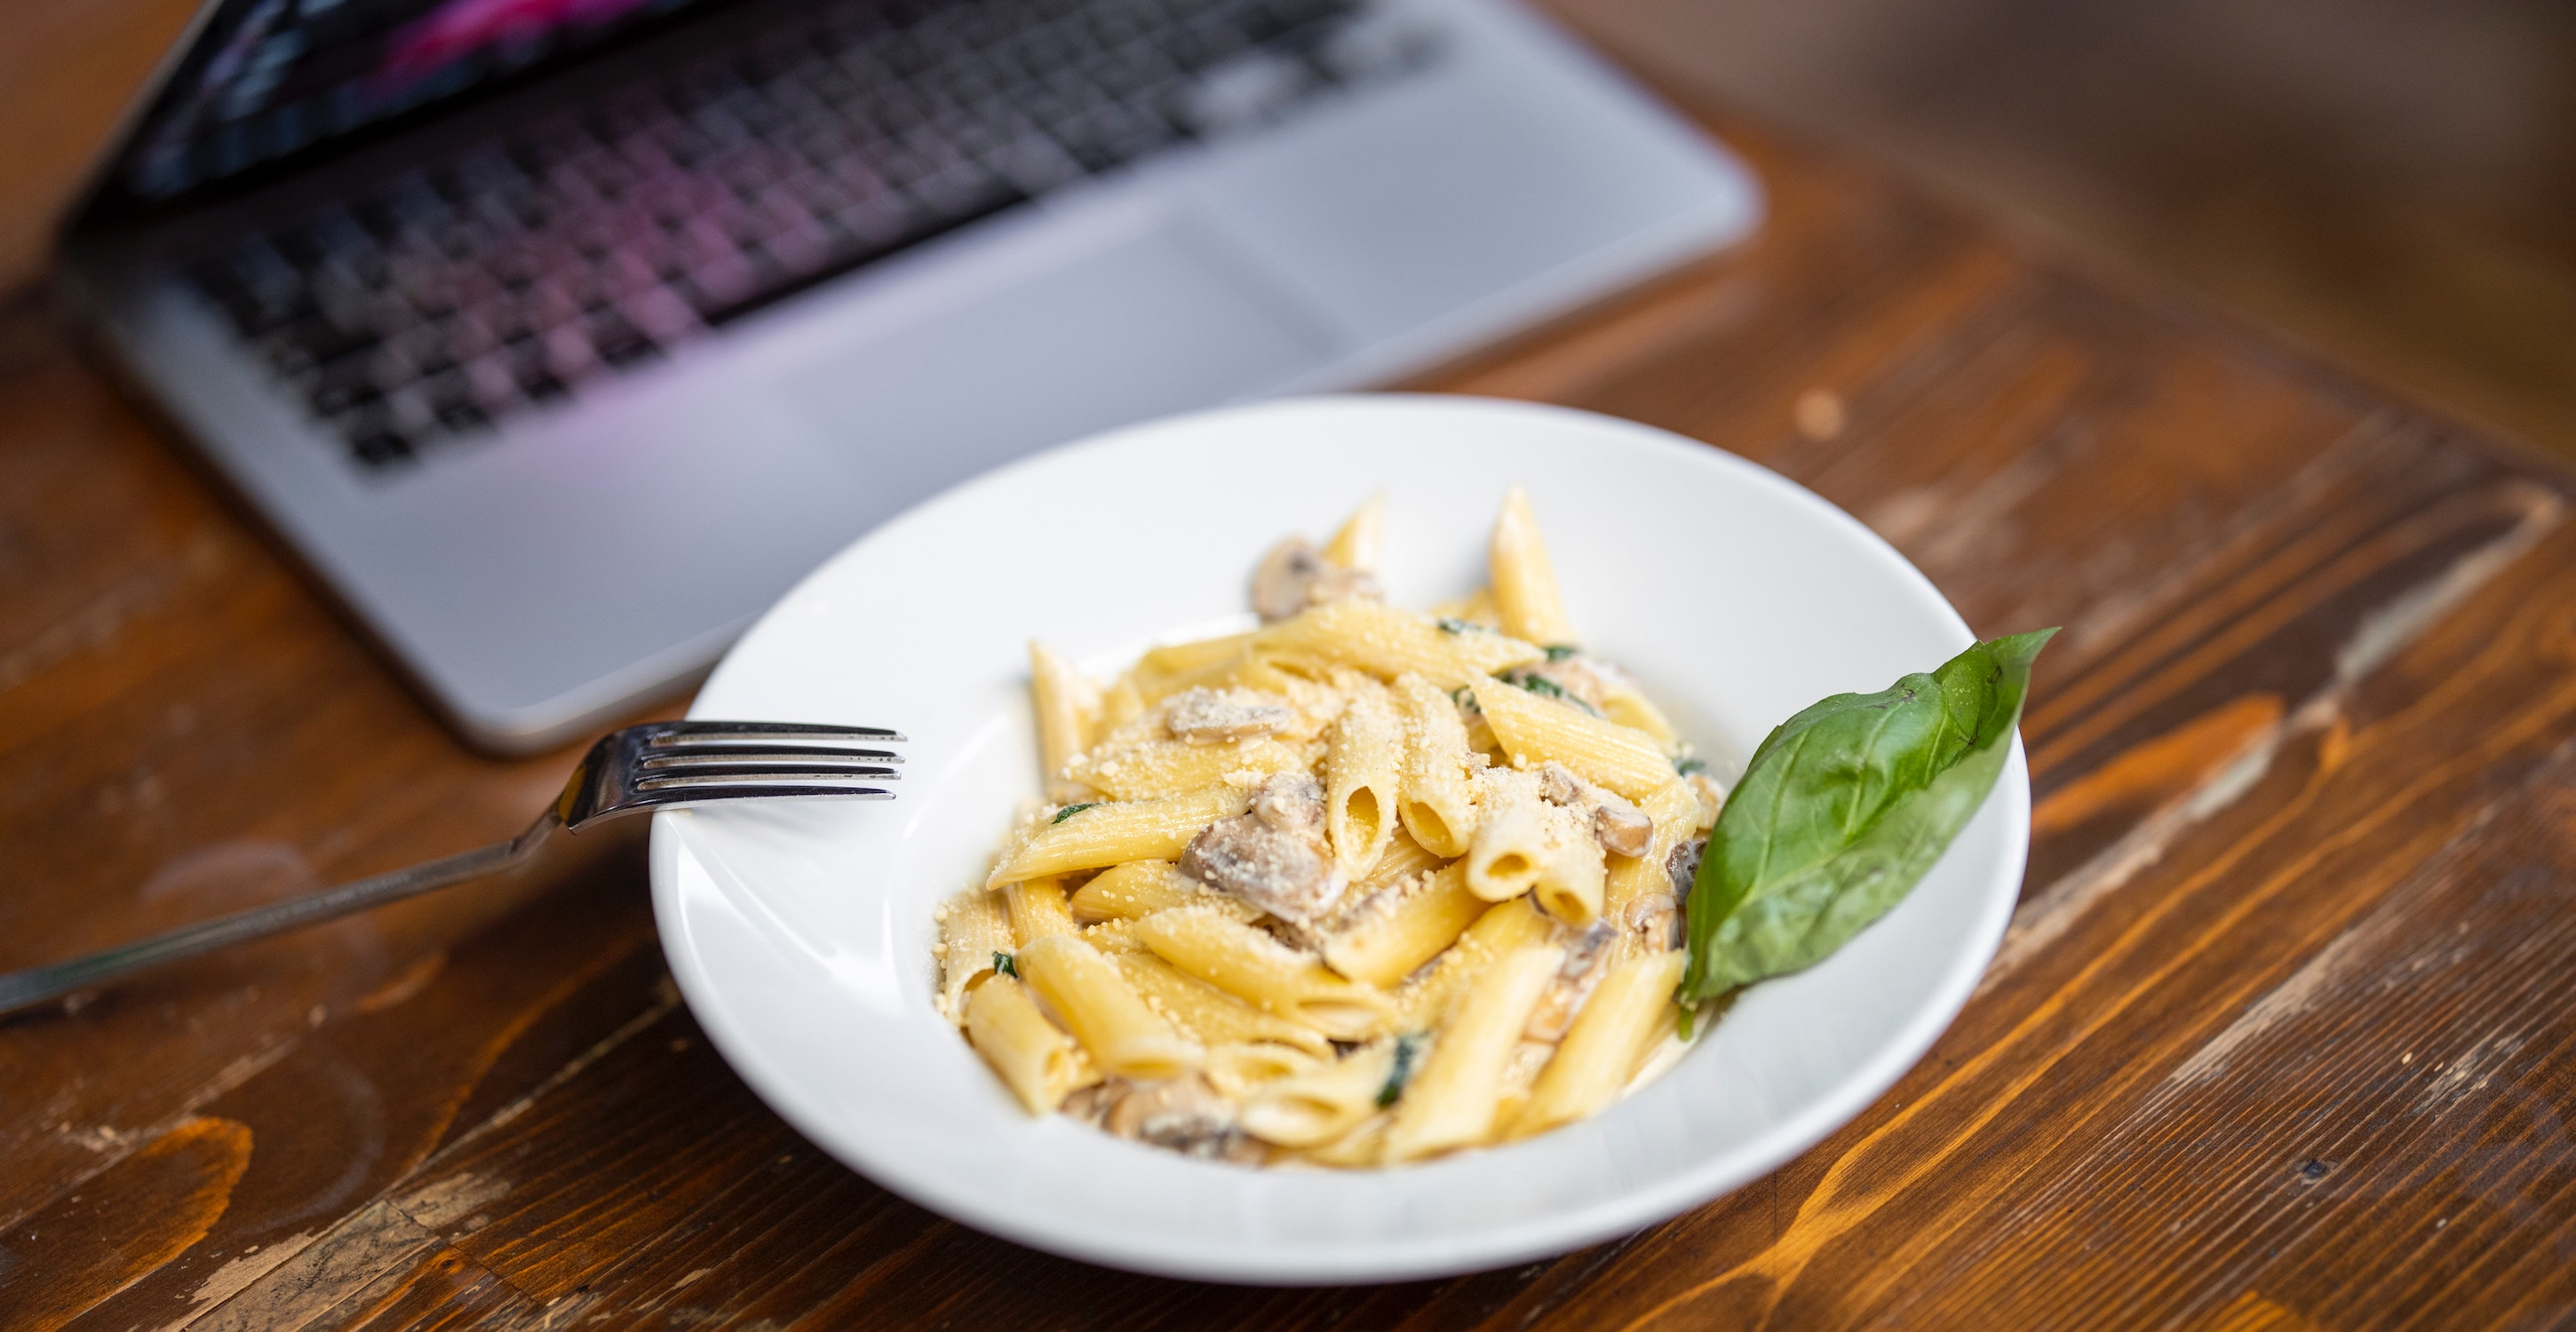 Pasta and laptop